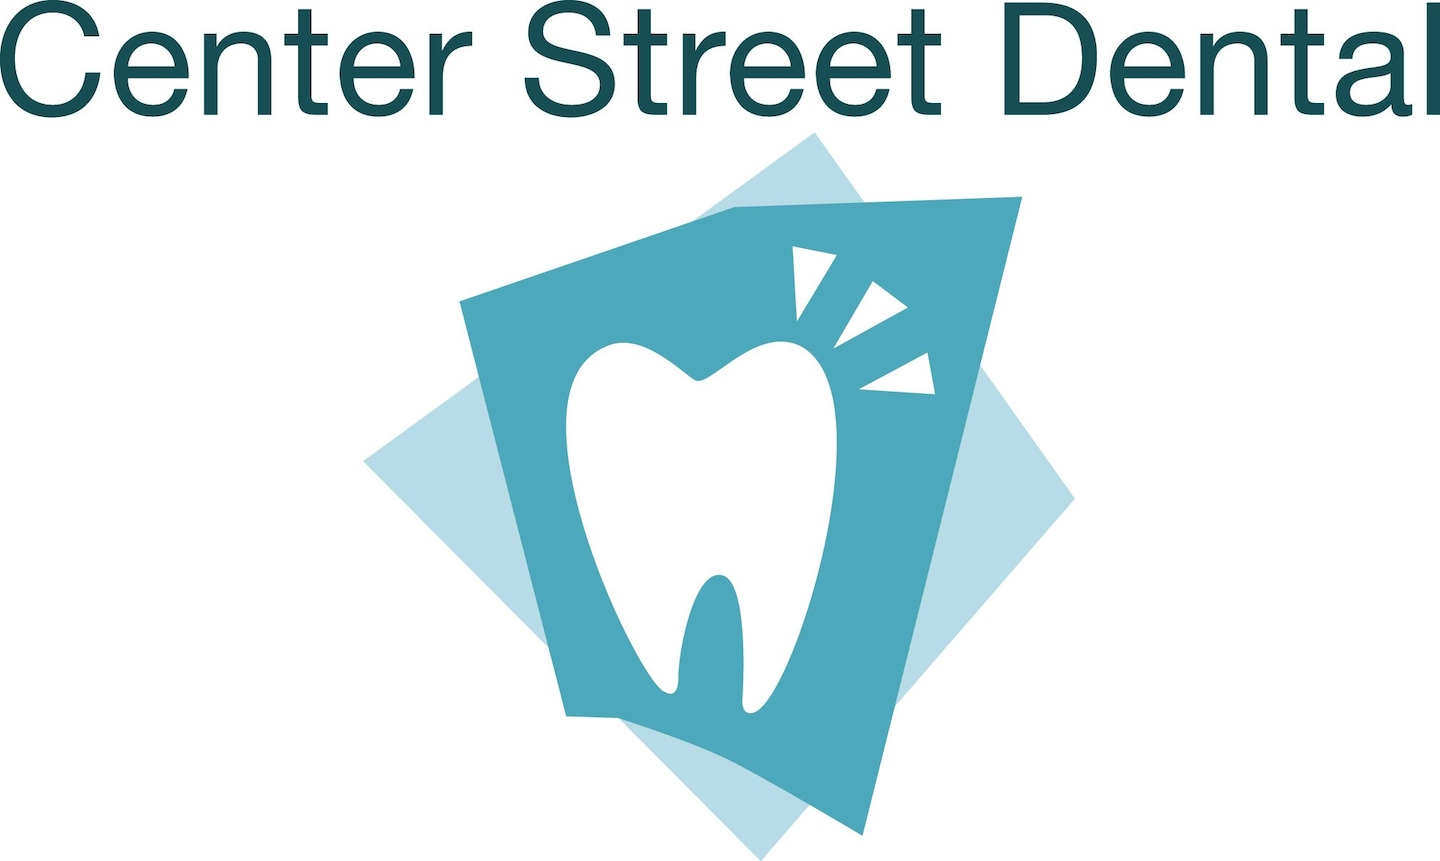 Center Street Dental